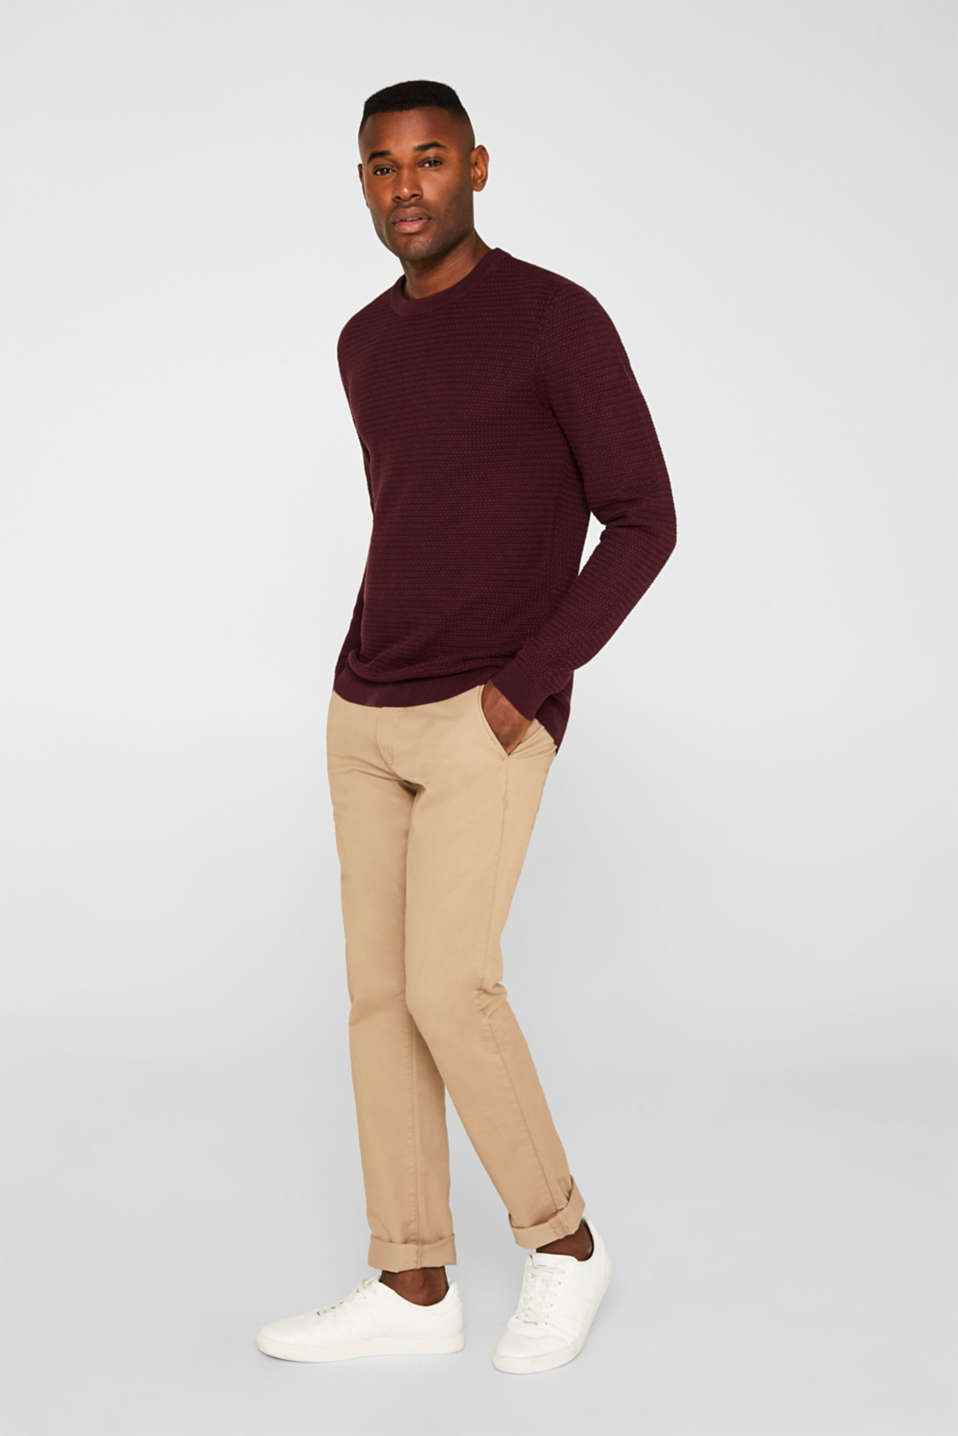 Textured jumper made of 100% cotton, BORDEAUX RED 5, detail image number 1